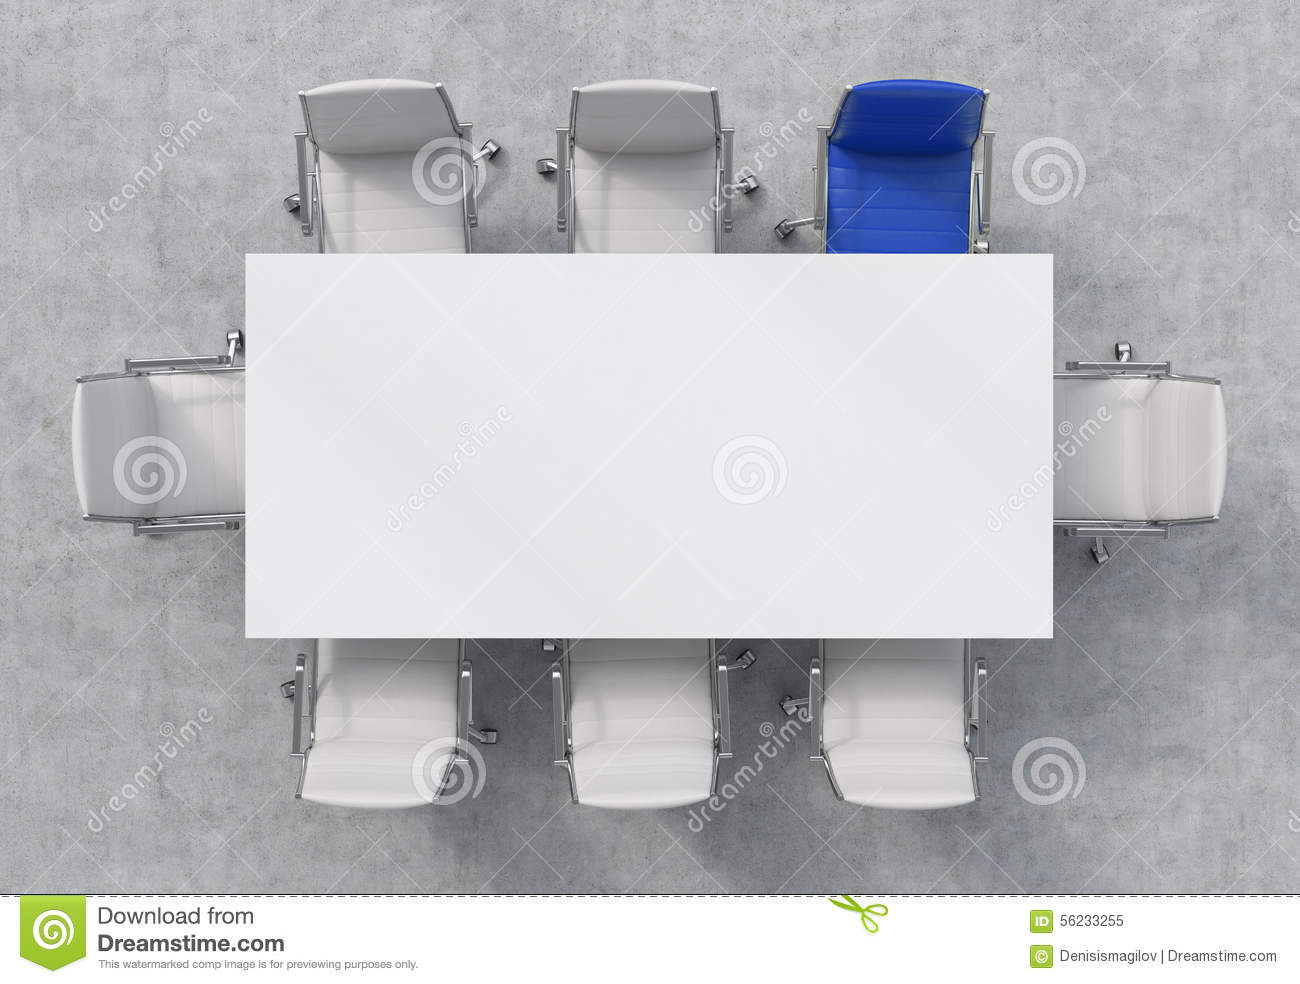 Rectangular Stock Illustrations Rectangular Stock - Conference room table and chairs clip art